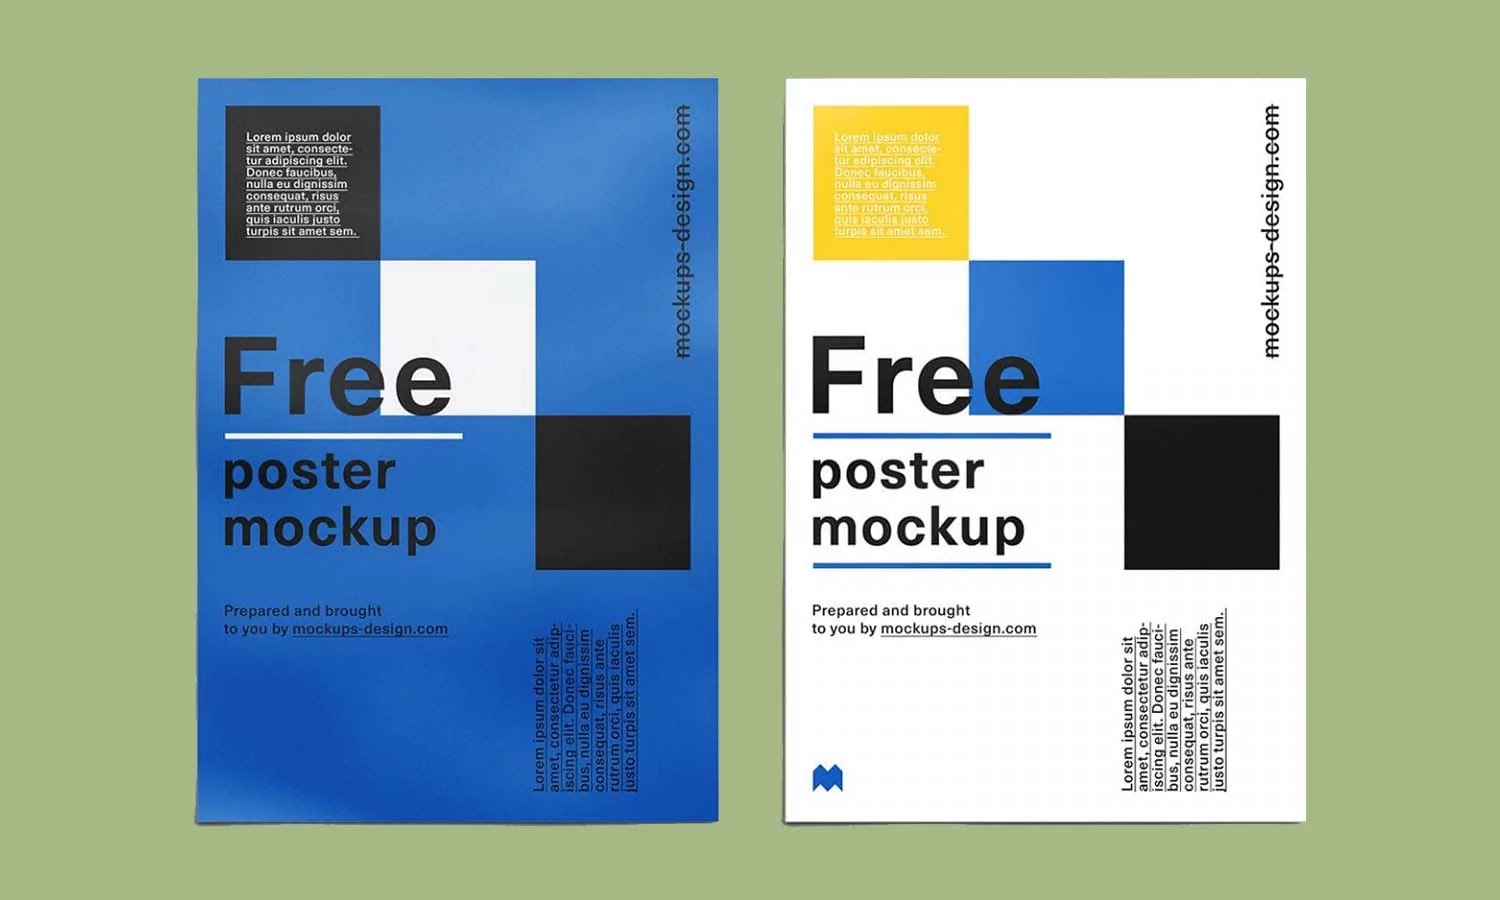 What Are The Top 10 Best Website For Free Mockup Downloads To Showcase Design Work?